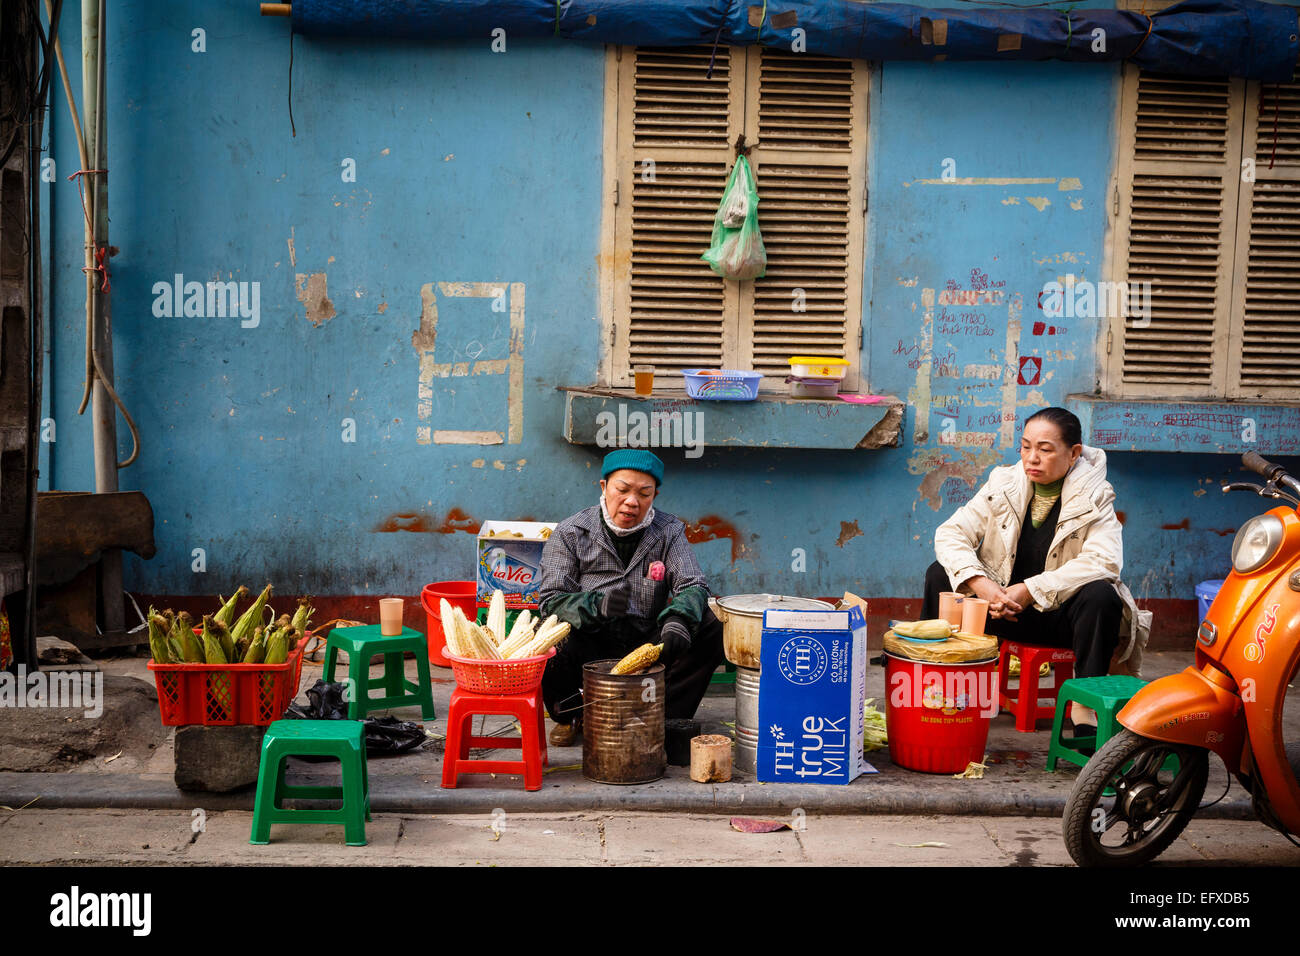 Street scene in the old quarter, Hanoi, Vietnam. - Stock Image